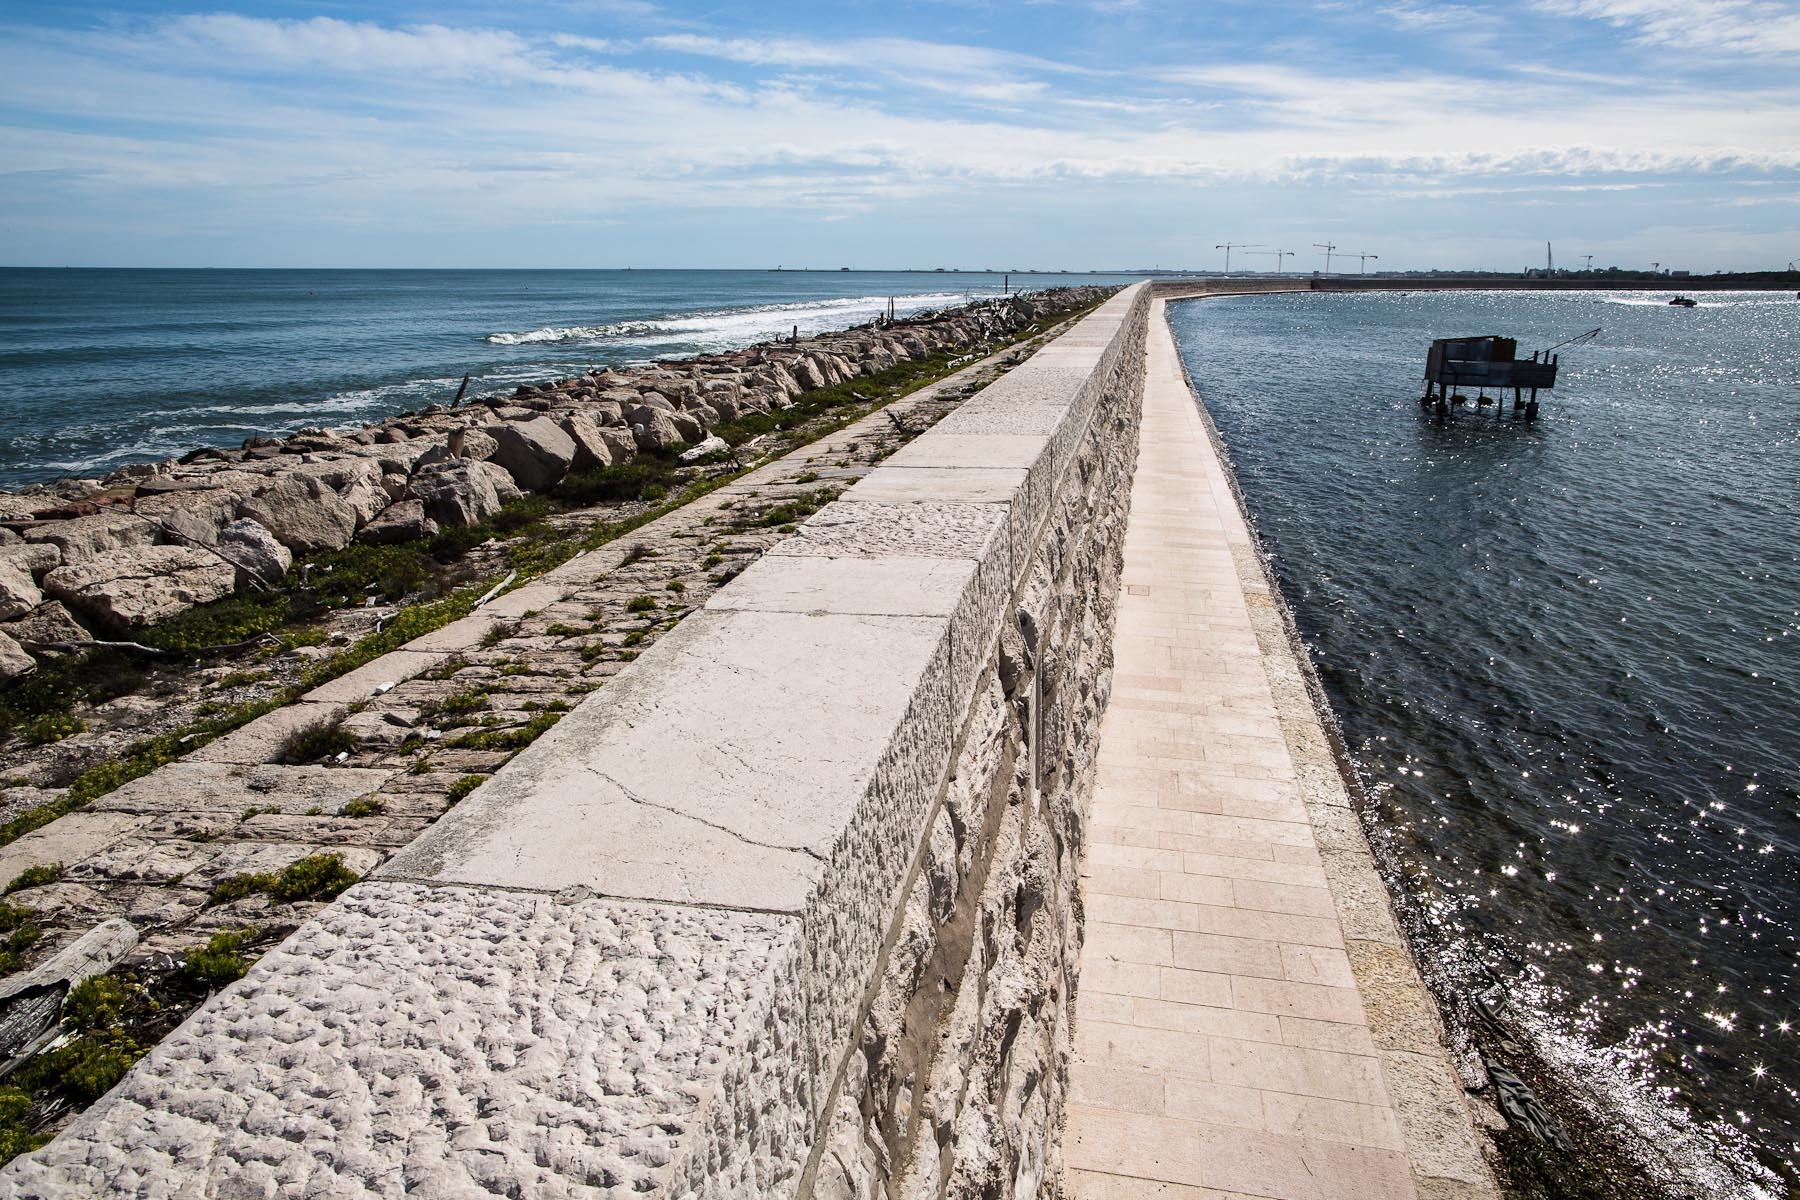 A strong high wall called the Murazzi stretches some 20 km along the barrier island of Pellestrina to protect the lagoon from open sea and the waves that come with storms. The wall was built over two hundred years ago and was restored in the 1970s.